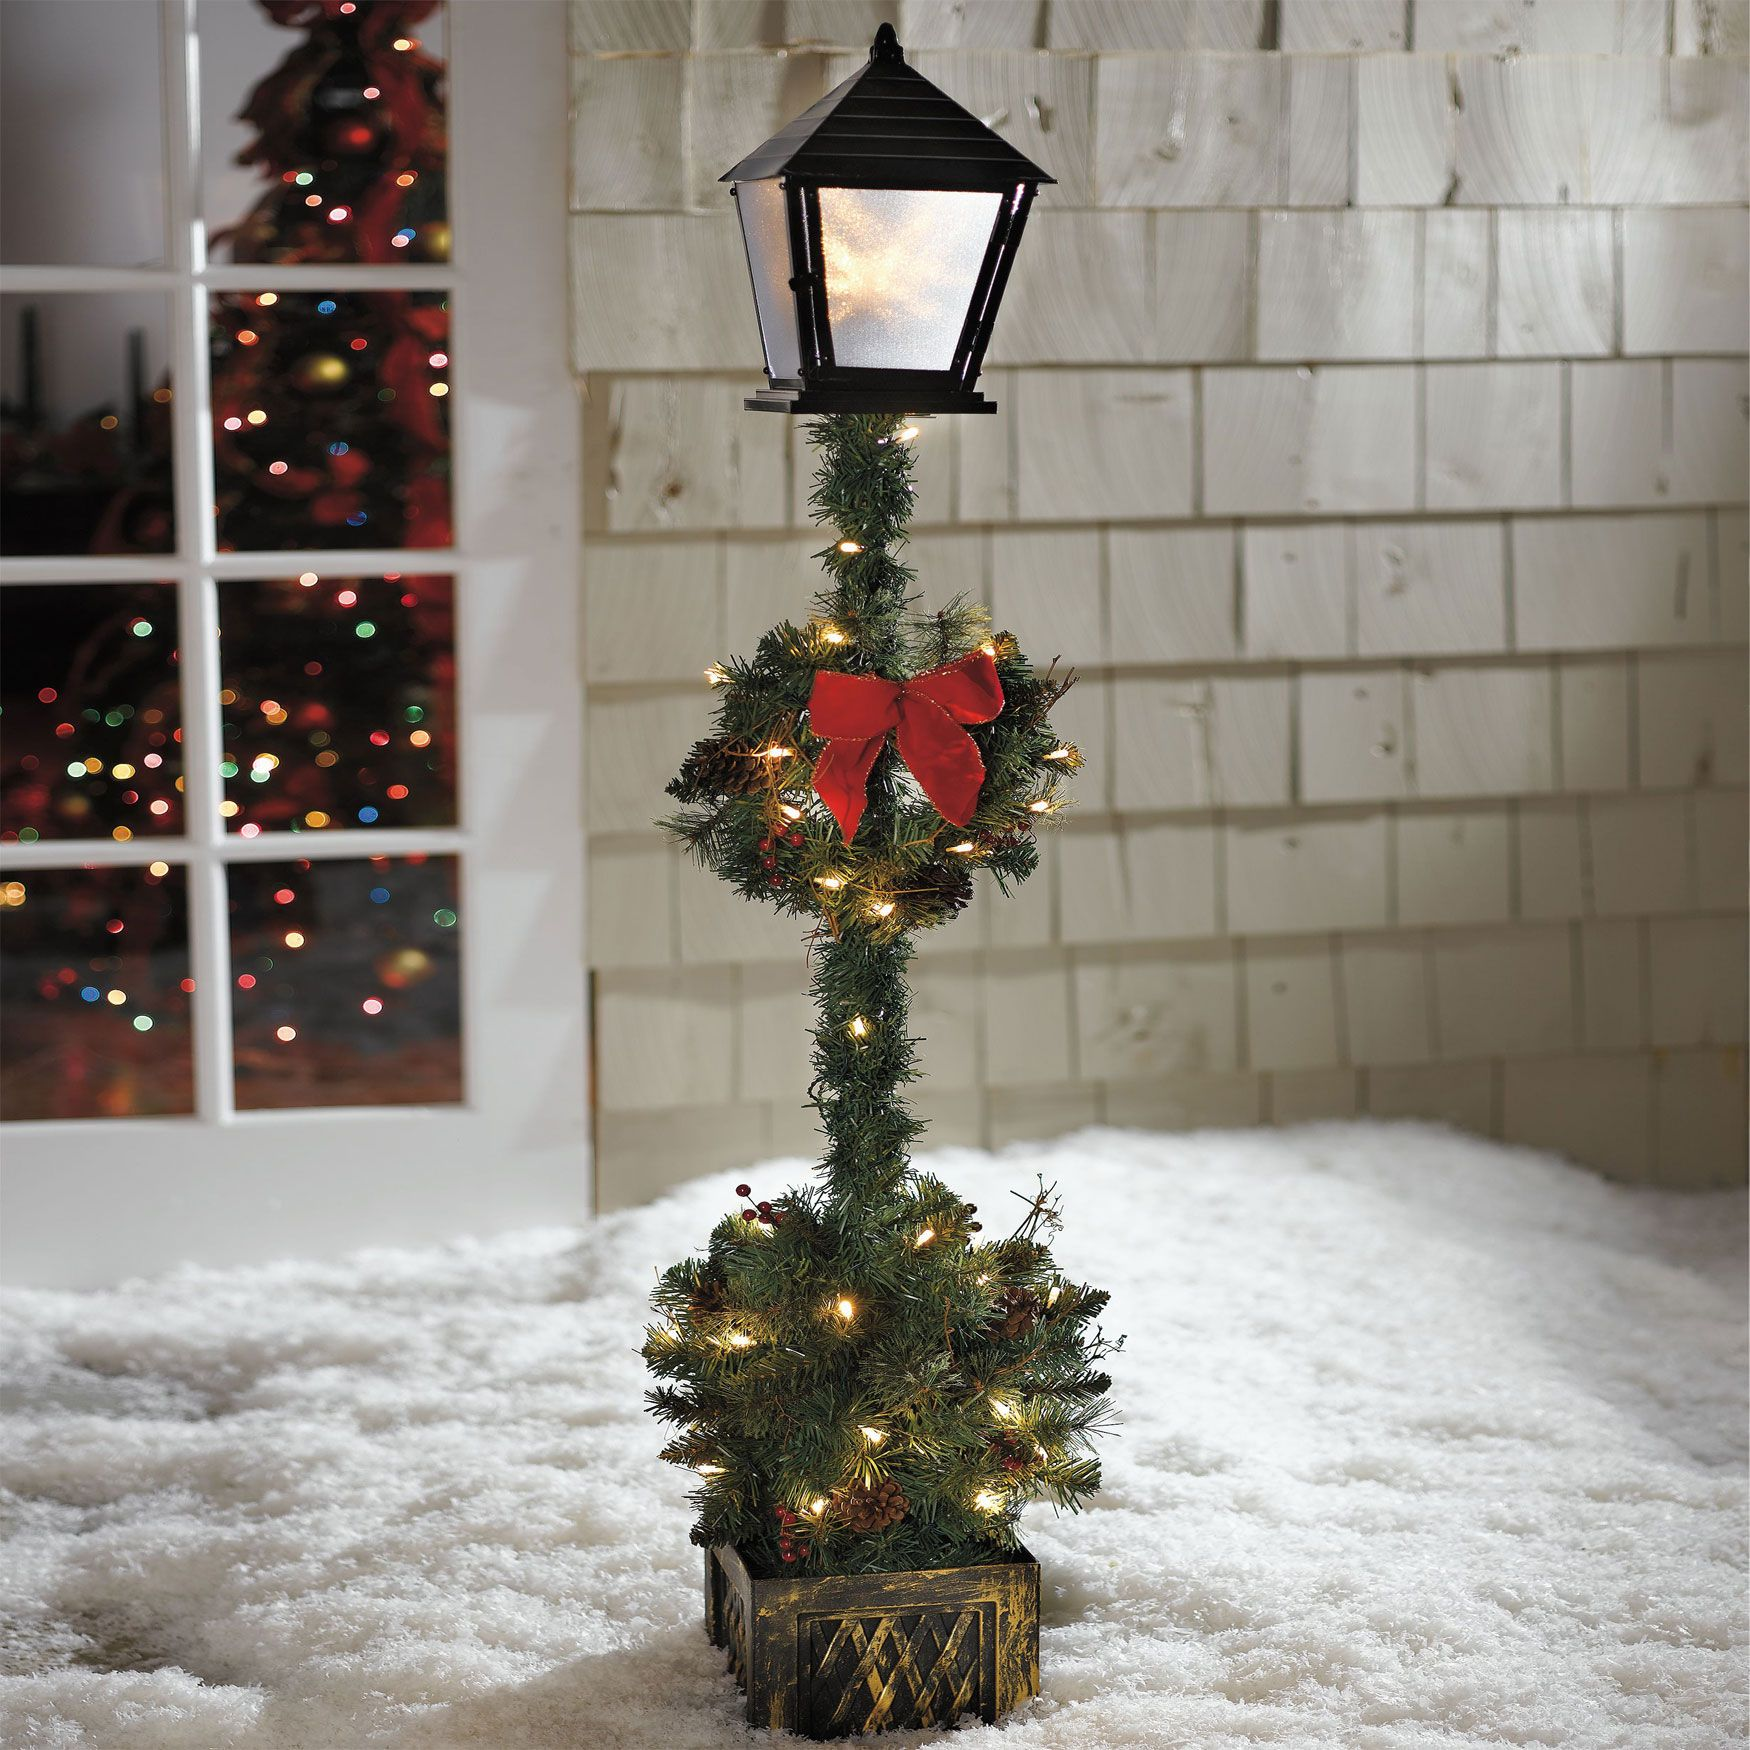 cordless 5 lamp post topiary outdoor christmas decor - Outdoor Christmas Lamp Post Decoration